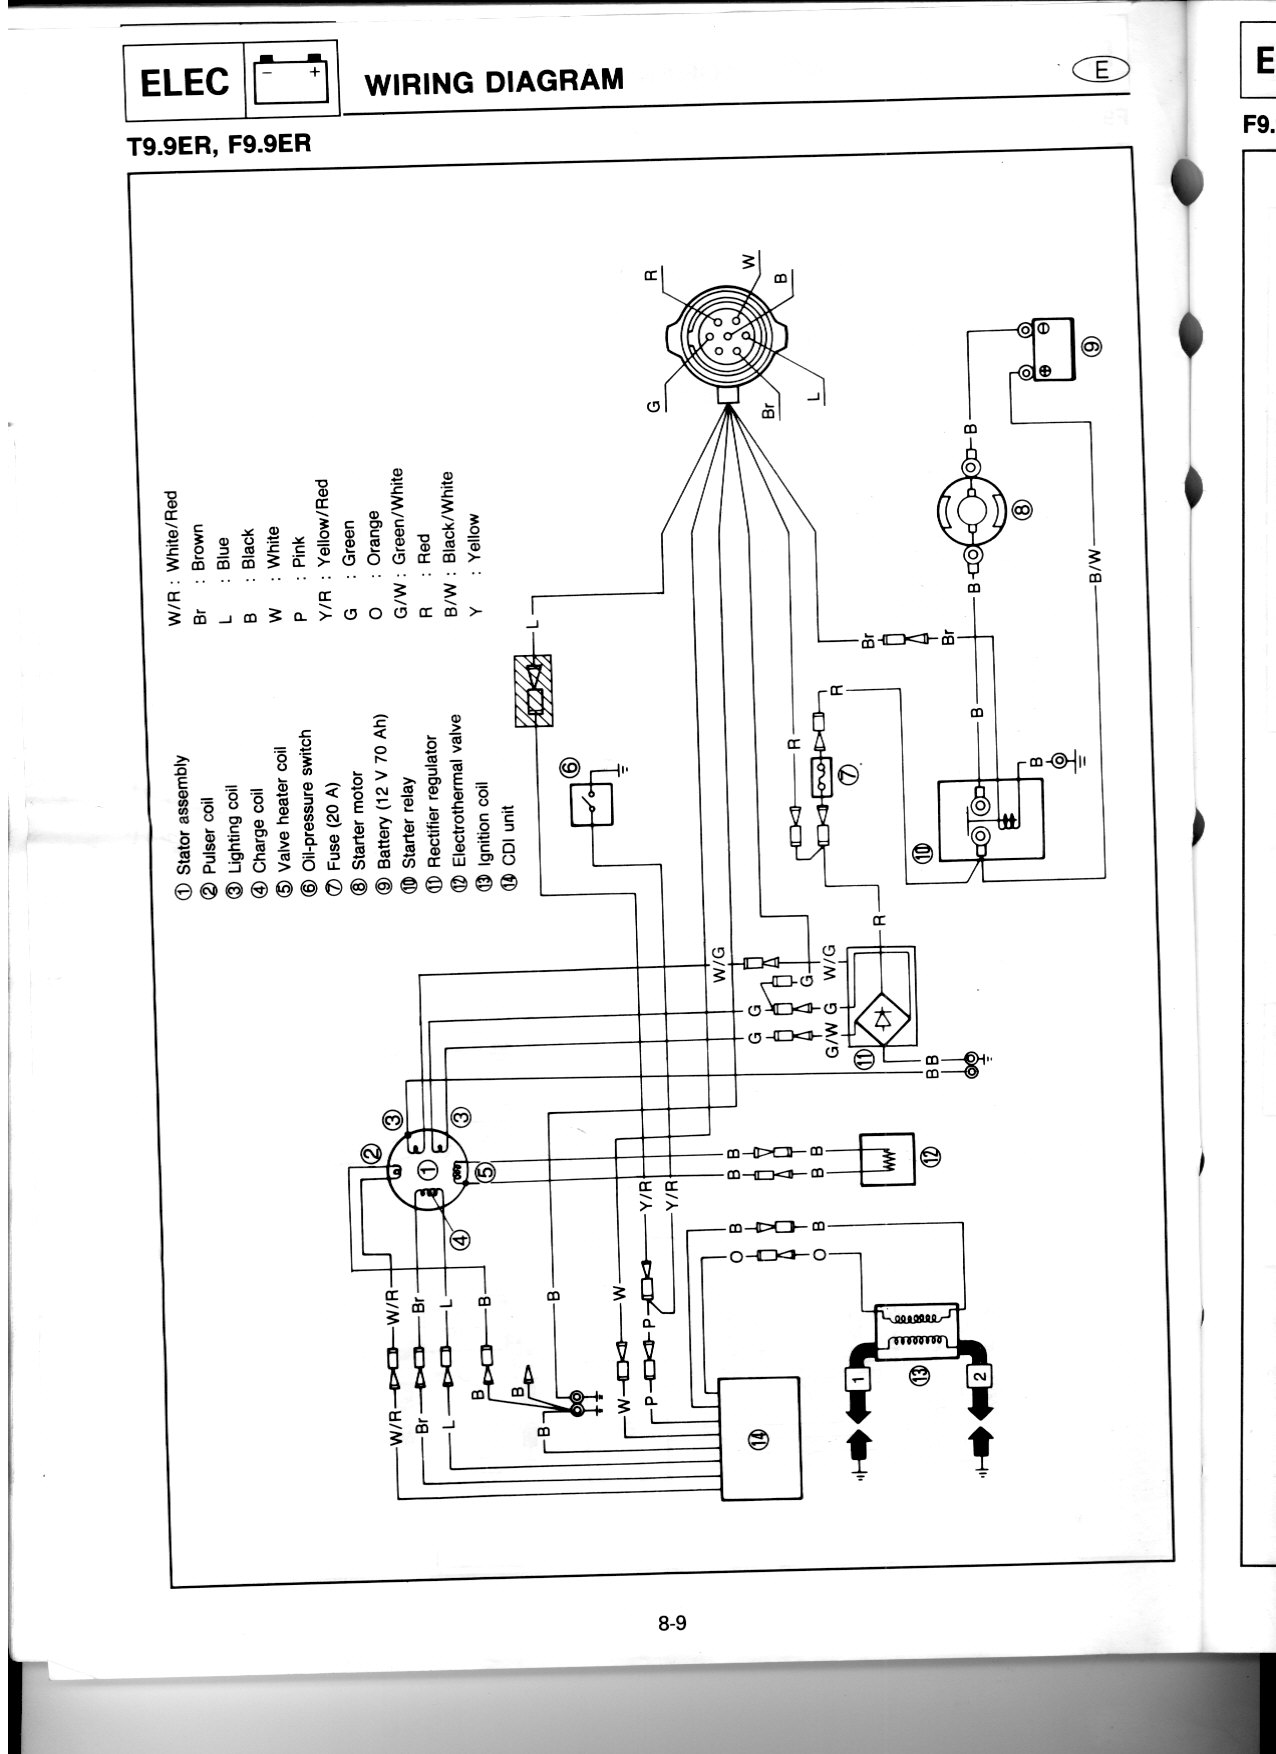 hight resolution of t9 9 electrical wiring diagram needed pdq owners forum 120 force outboard wiring yamaha outboard wiring